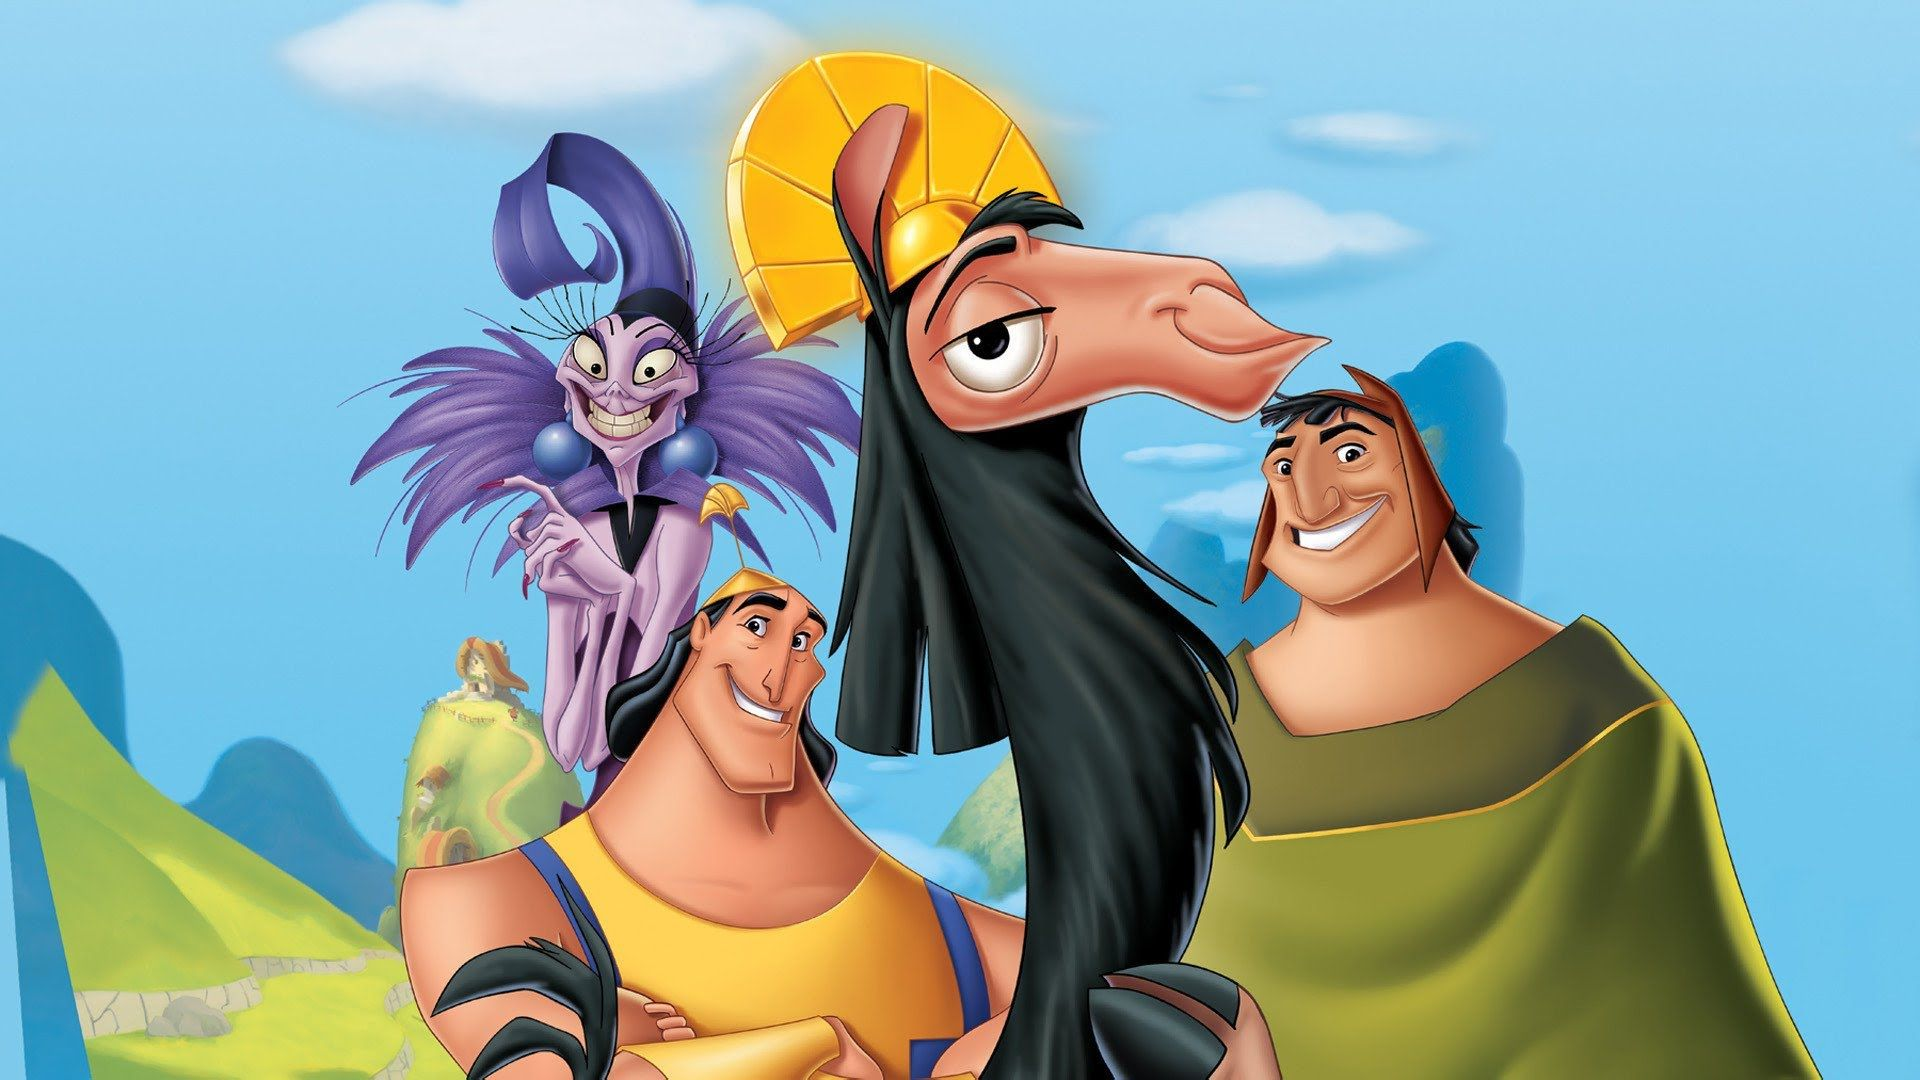 The Emperor S New Groove Directed By Mark Dindal Produced By Randy